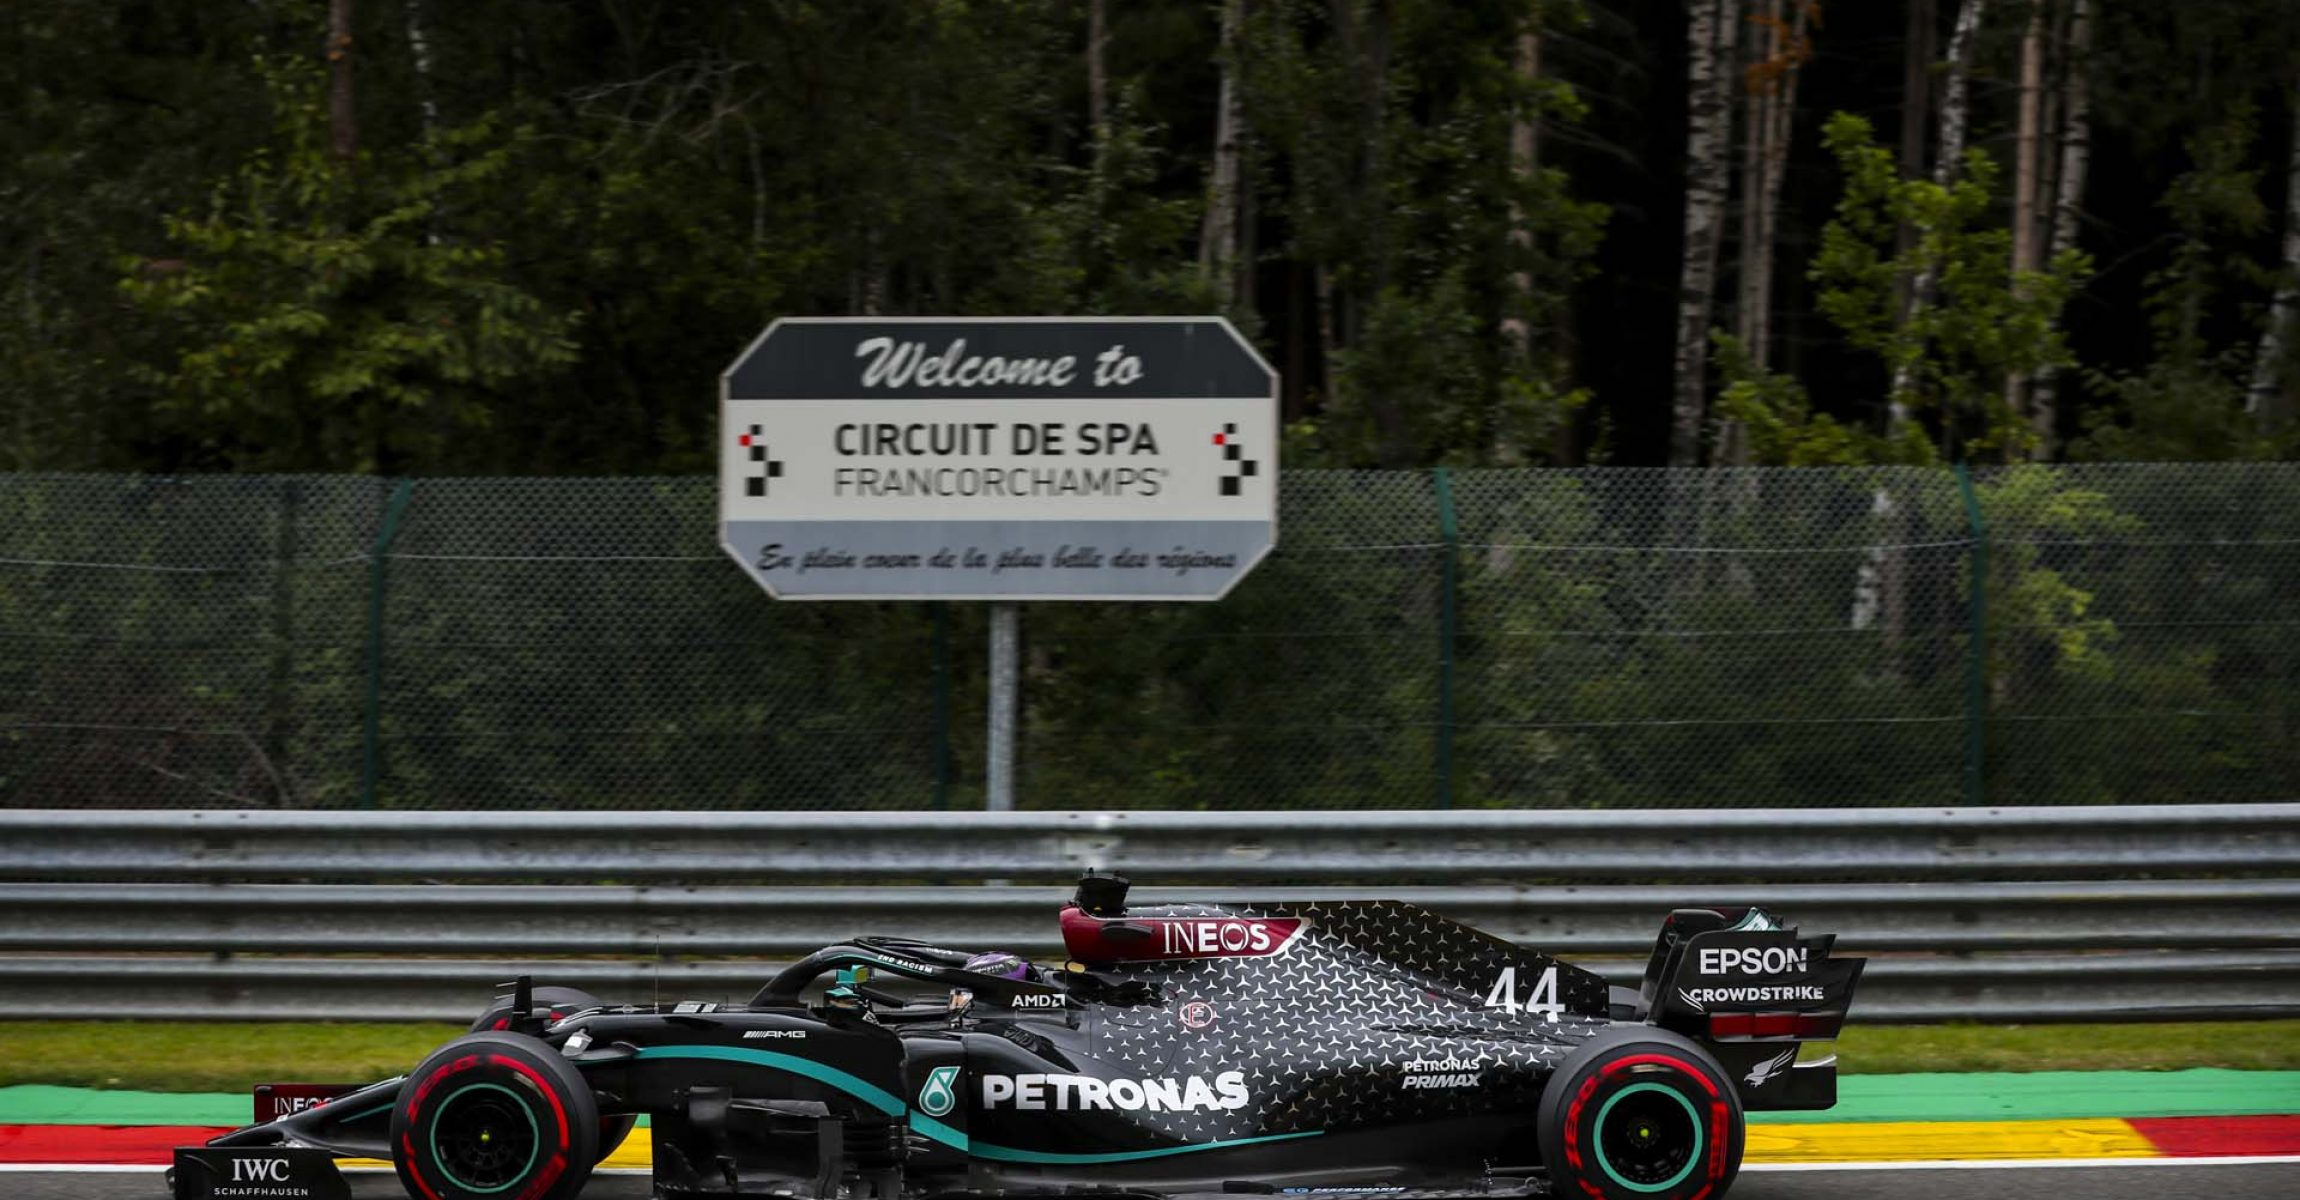 SPA-FRANCORCHAMPS, BELGIUM - AUGUST 28: Lewis Hamilton, Mercedes F1 W11 EQ Performance during the Belgian GP at Spa-Francorchamps on Friday August 28, 2020 in Spa, Belgium. (Photo by Charles Coates / LAT Images)